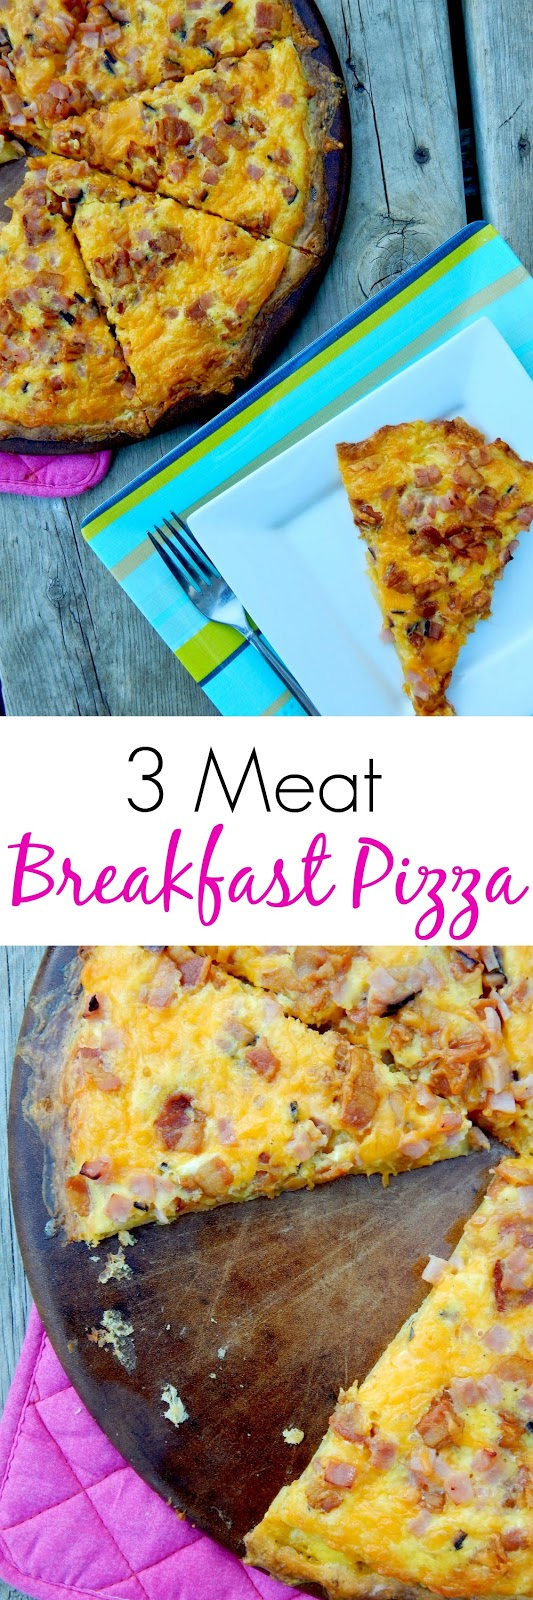 3 meat breakfast pizza (sweetandsavoryfood.com)